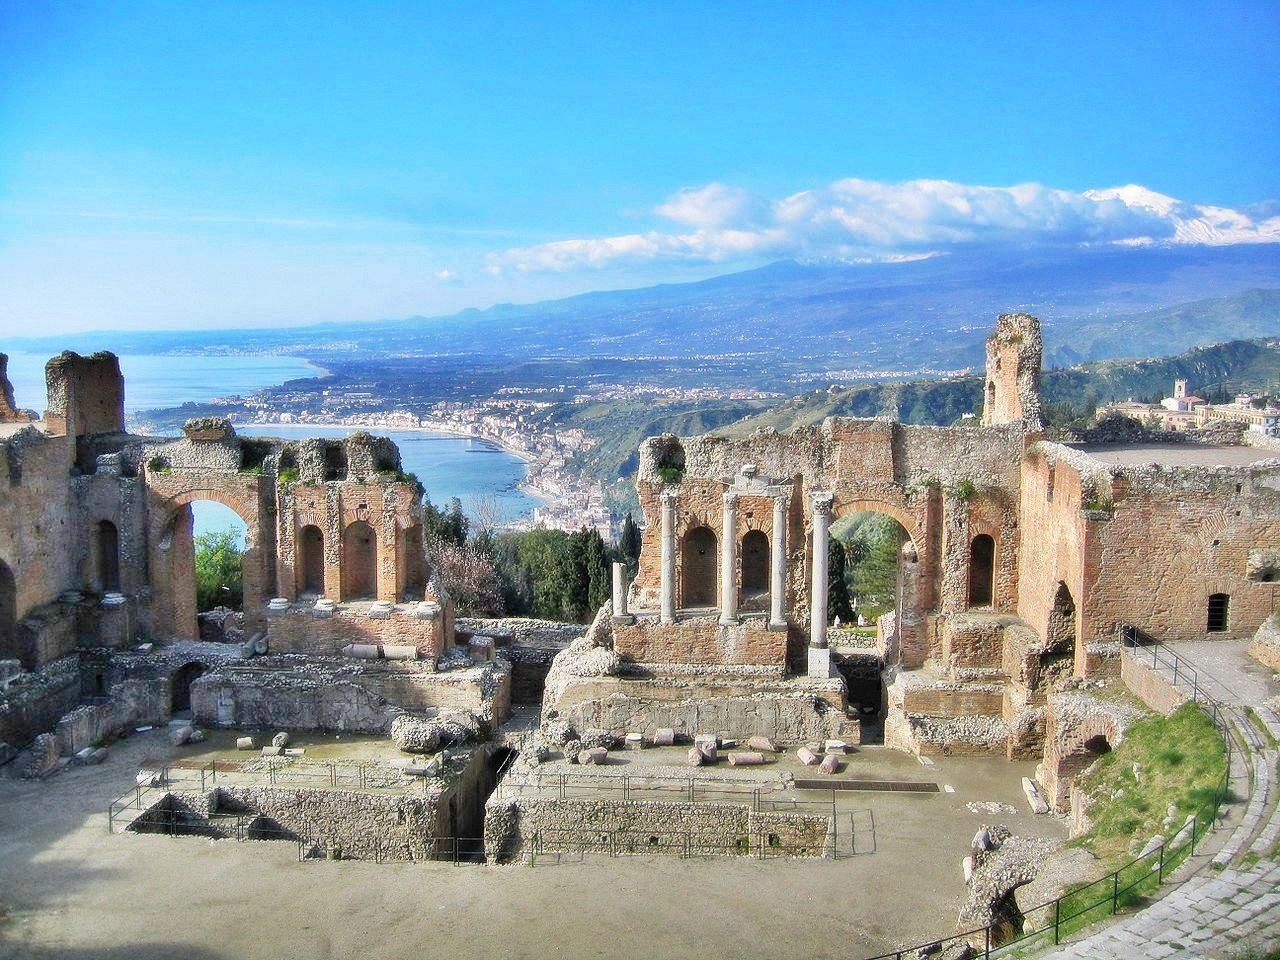 Rich in Italian history, Taormina is one of those off-the-beaten-track ports in Italy.